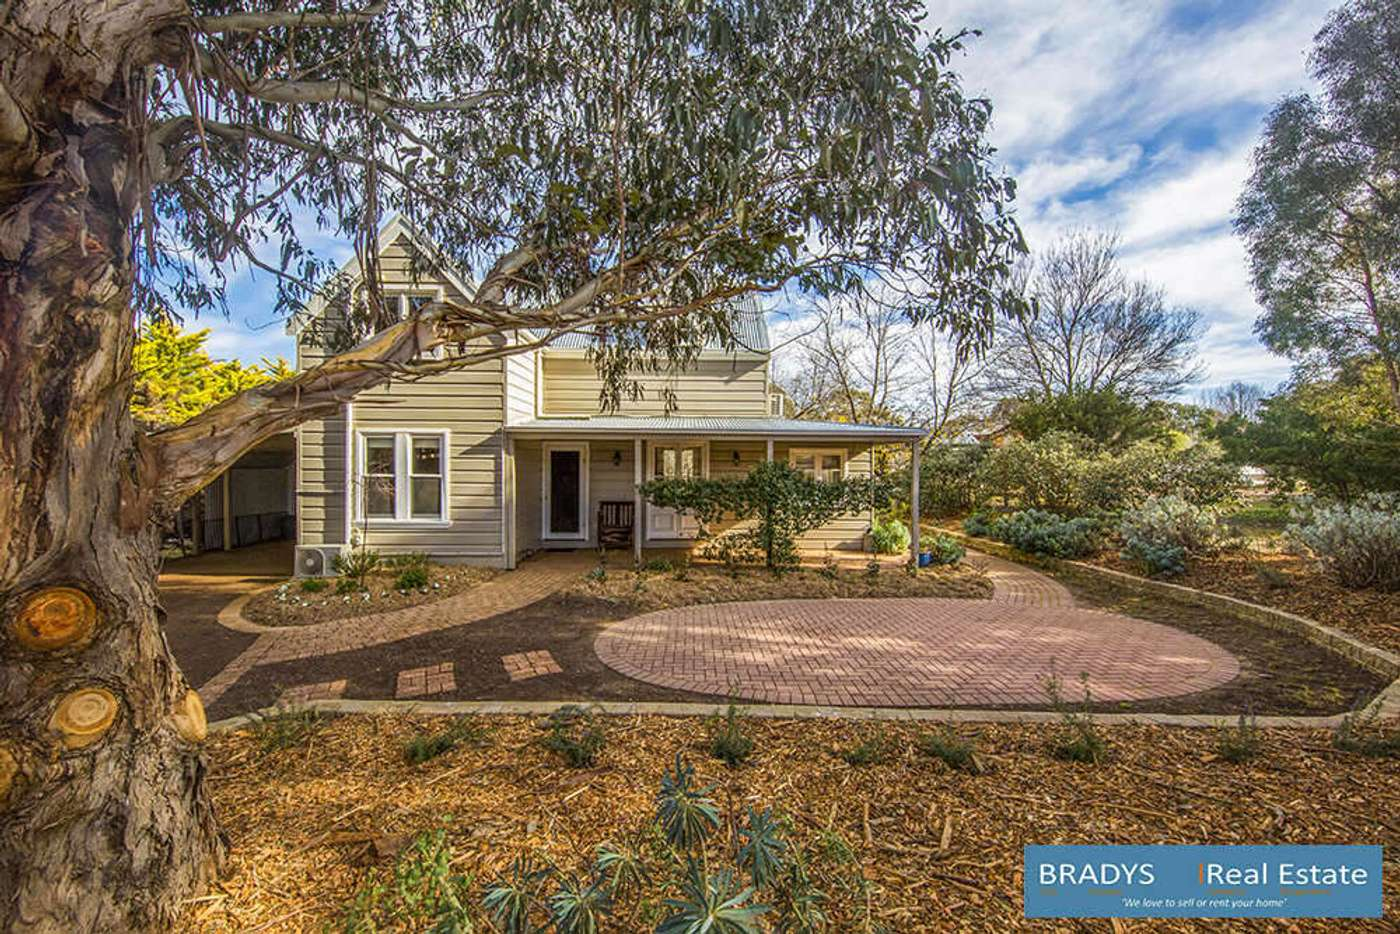 Main view of Homely house listing, 24 Lute Street, Gundaroo NSW 2620